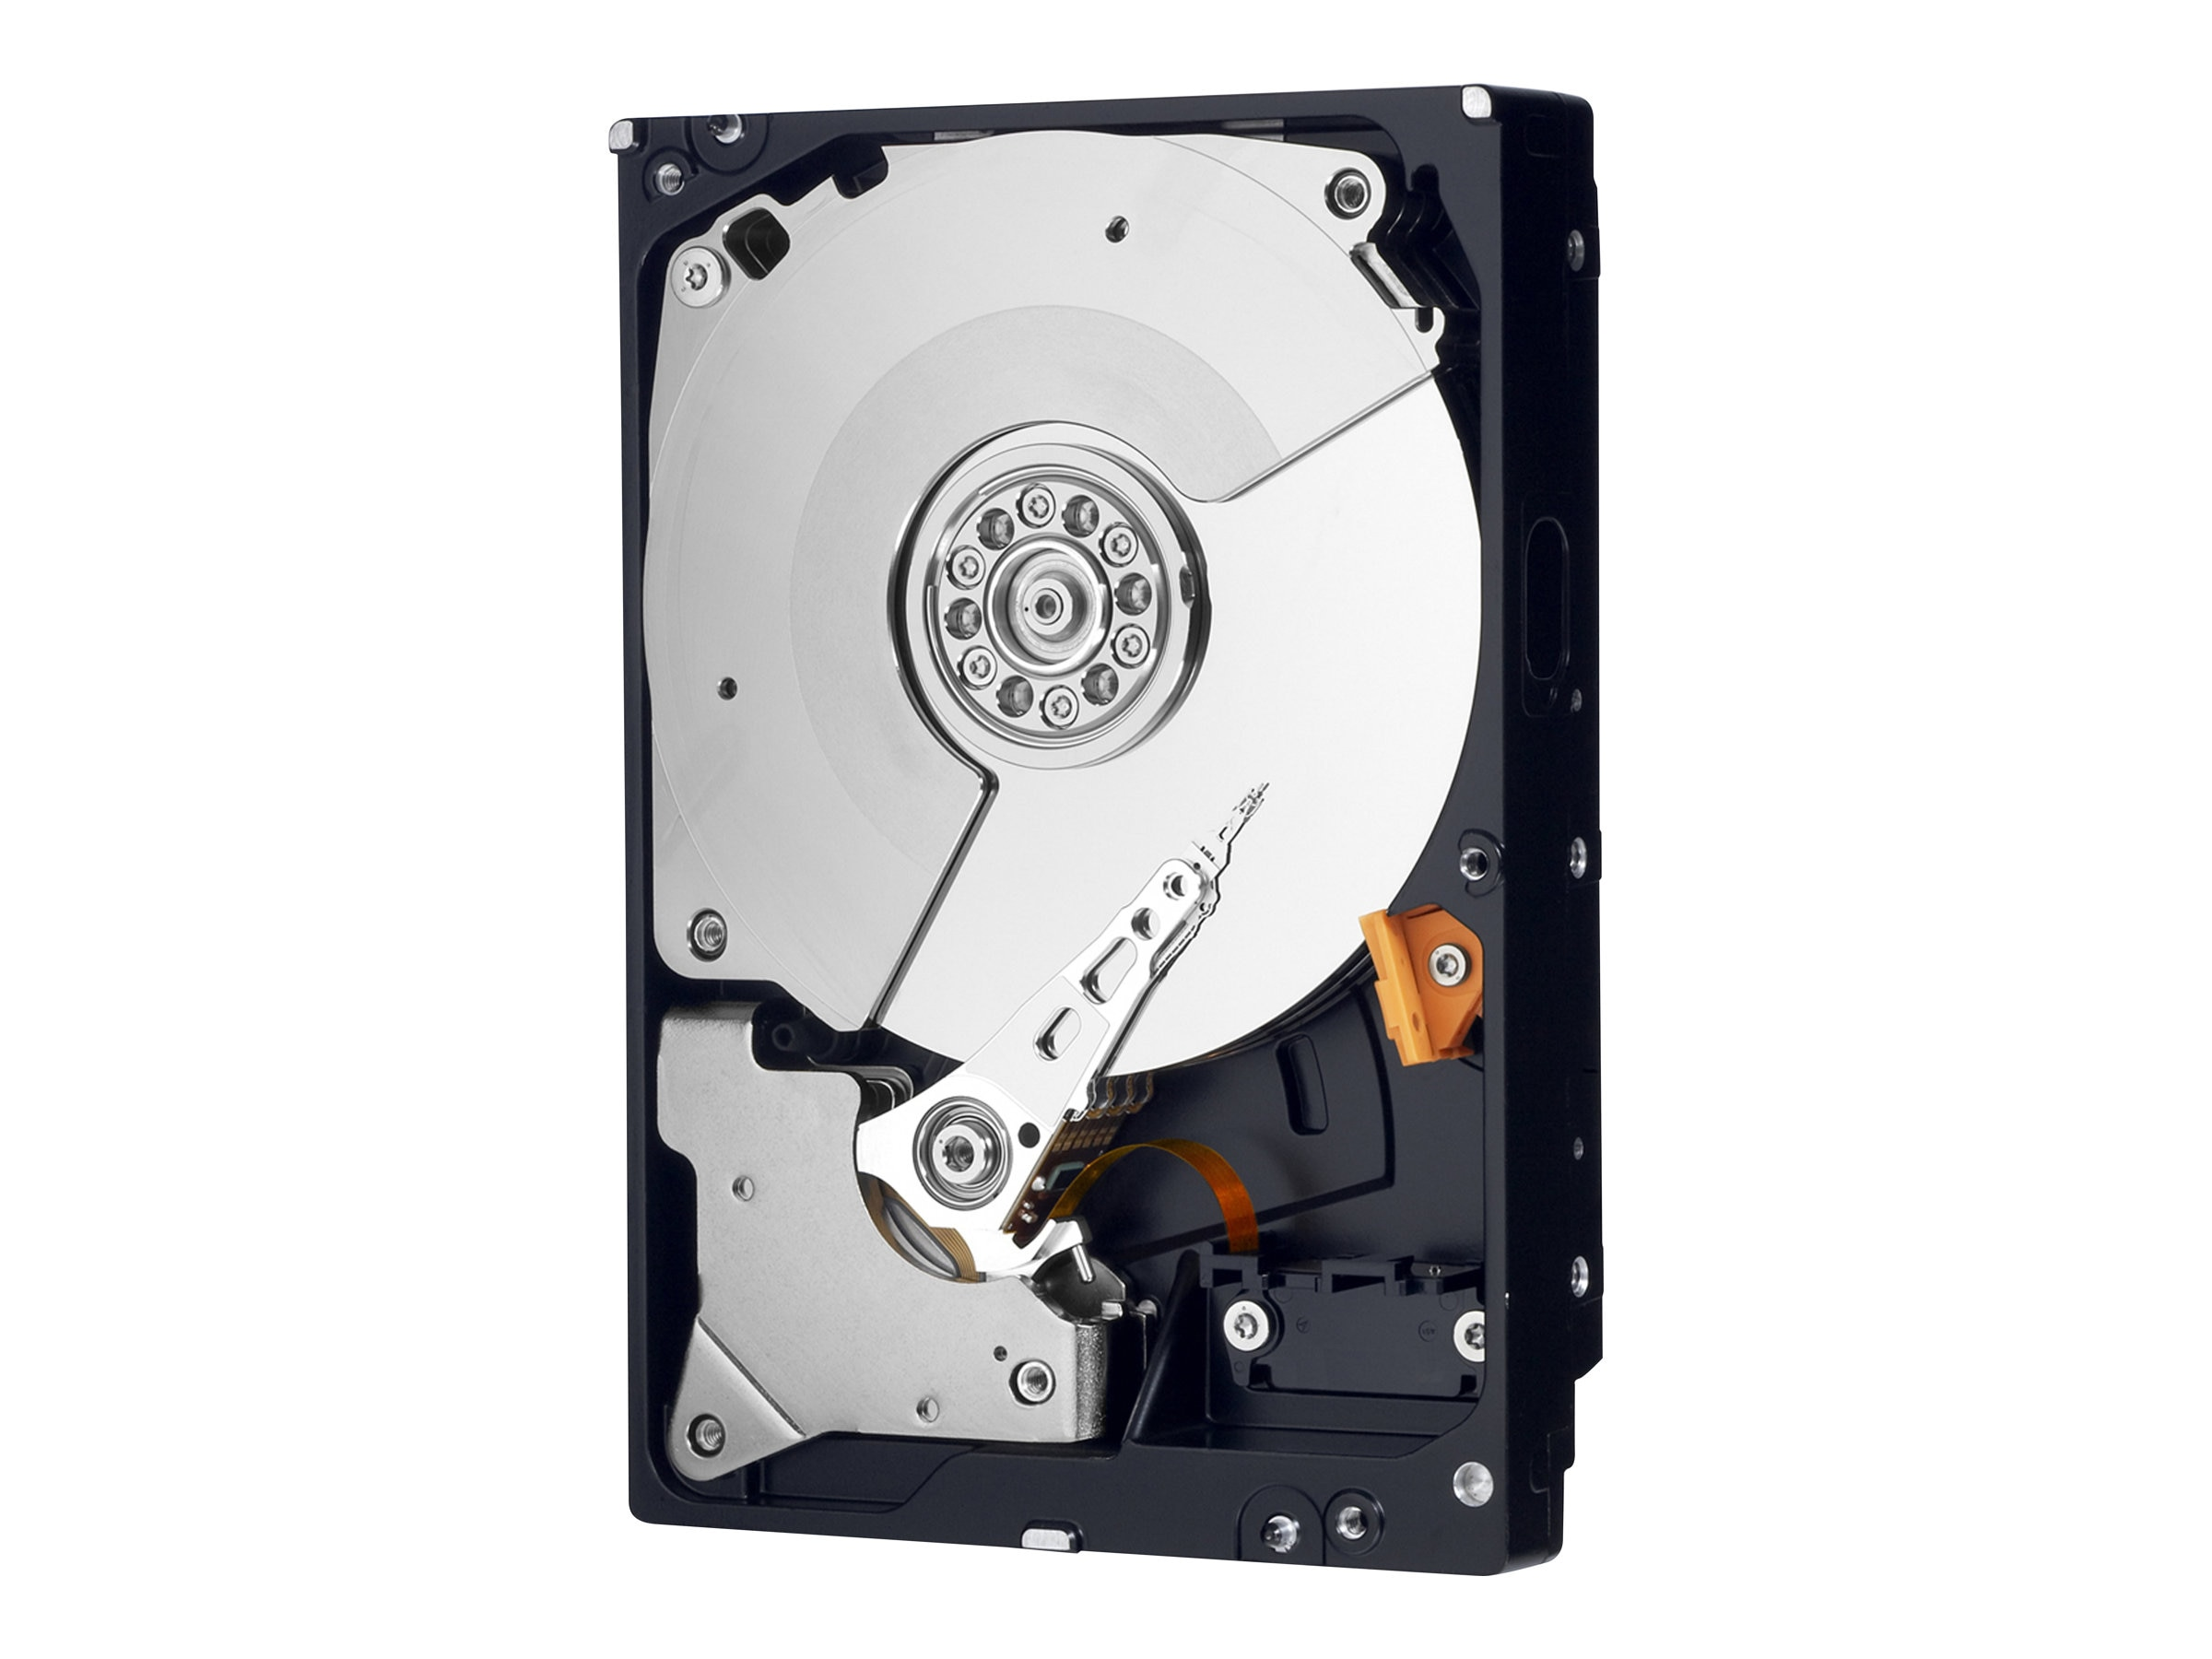 WD 500GB WD Caviar Black SATA 6Gb s 3.5 Internal Hard Drives - 64MB Cache (20-pack), WD5003AZEX-20PK, 14563357, Hard Drives - Internal